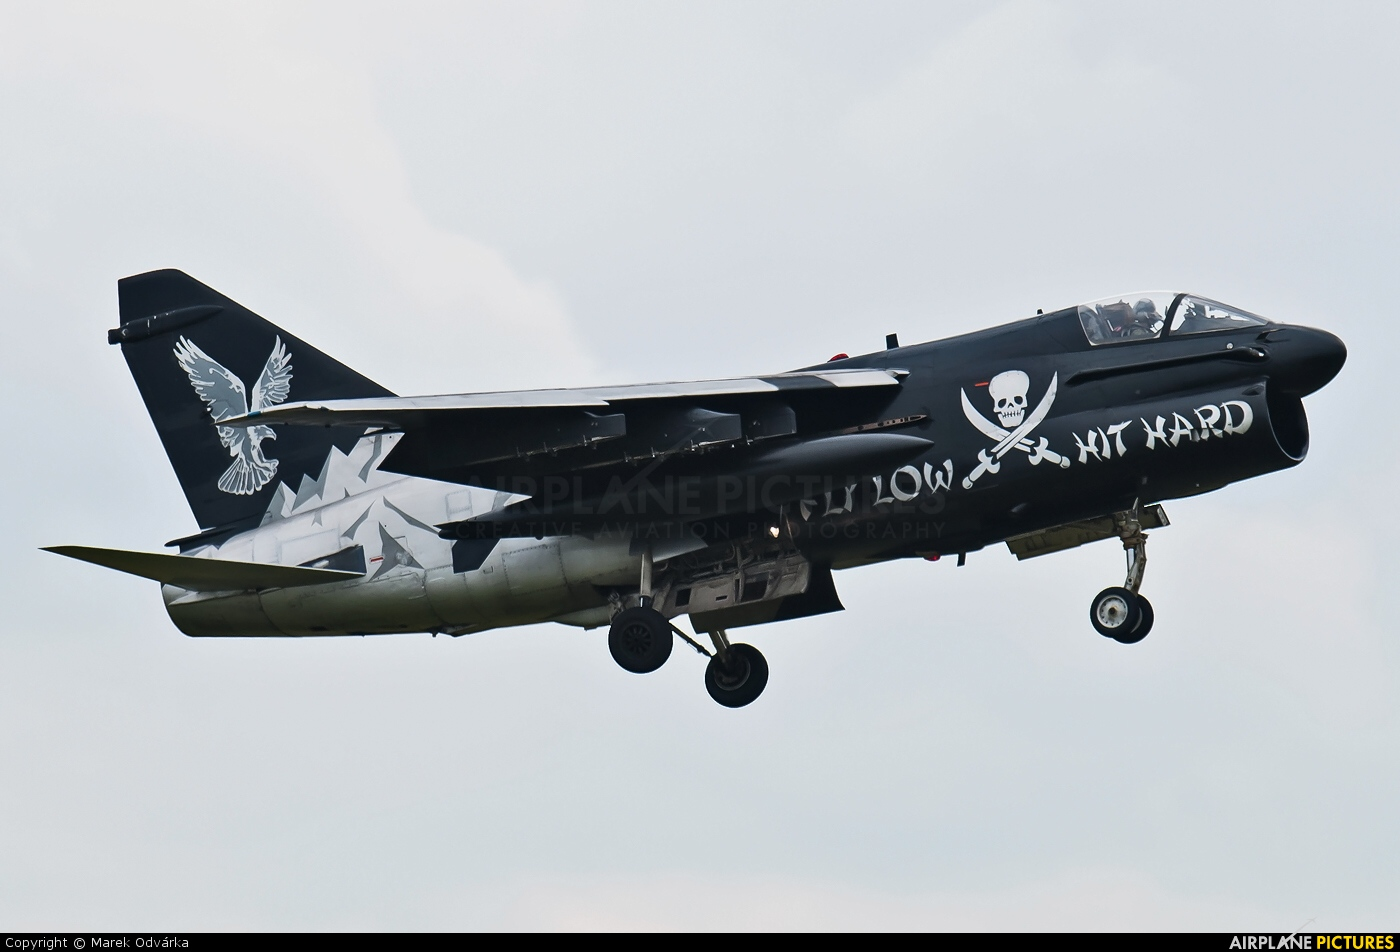 Greece - Hellenic Air Force 160616 aircraft at Uden - Volkel